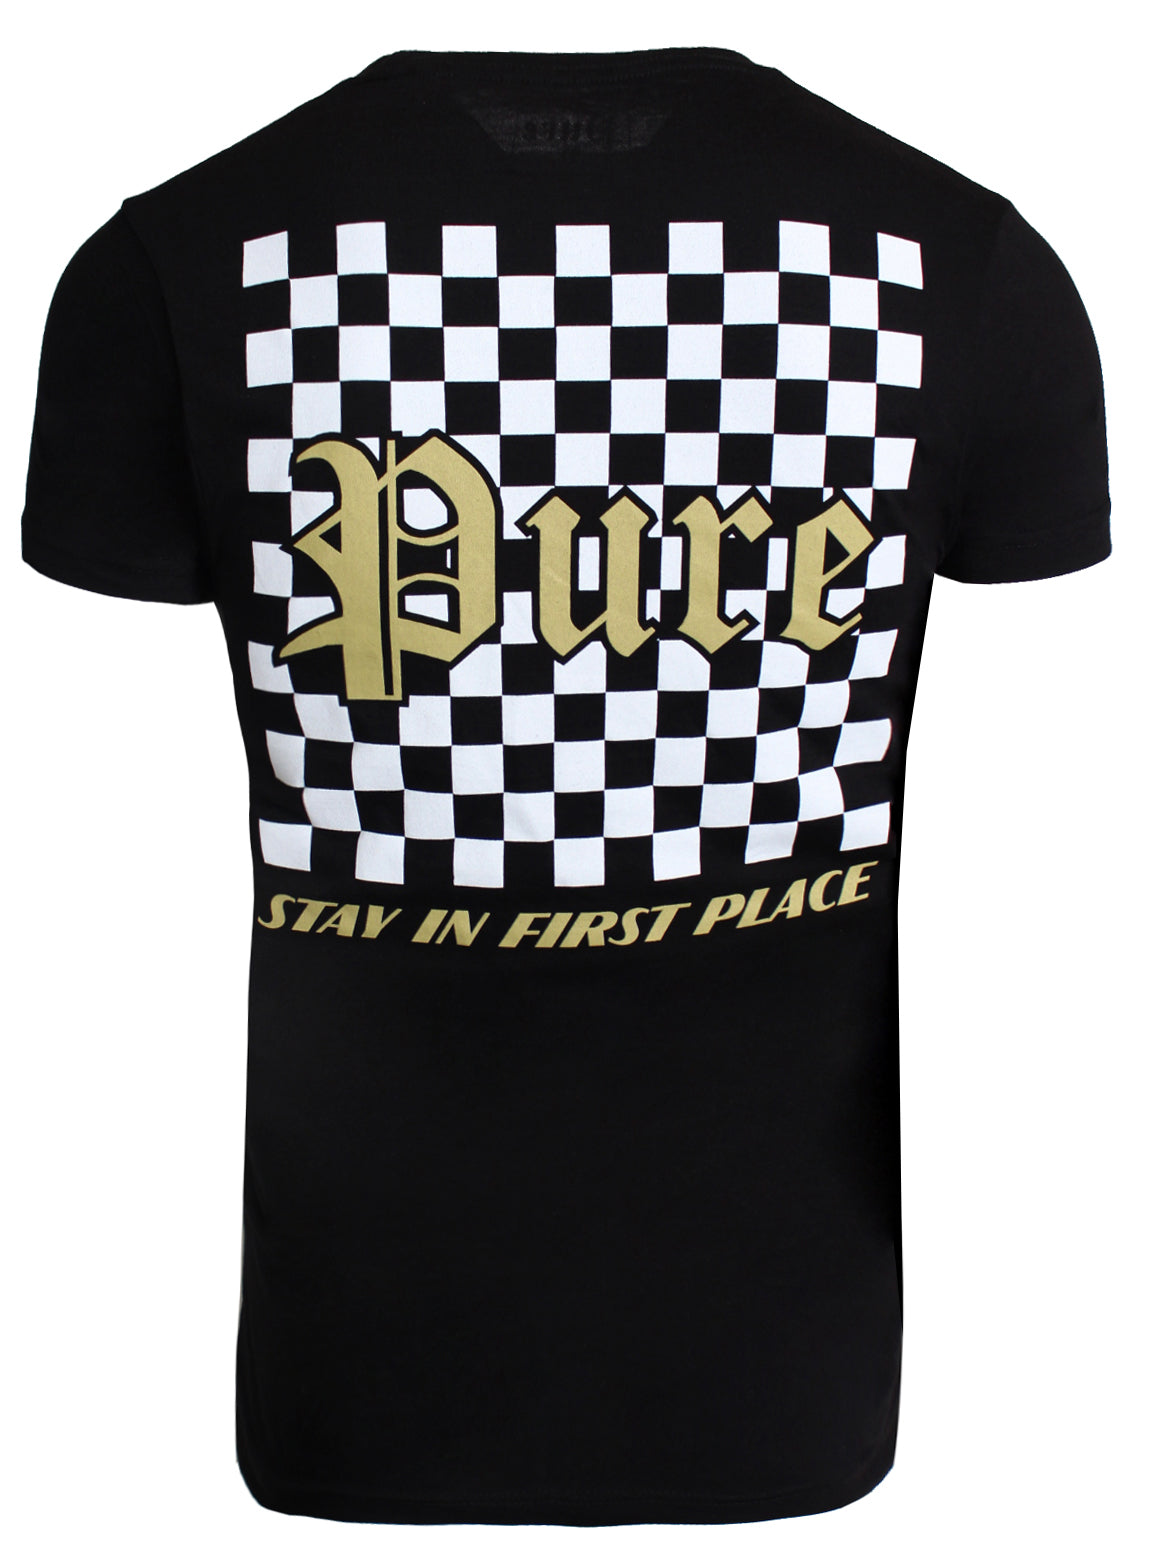 """Stay in First Place"" Pure Tee"